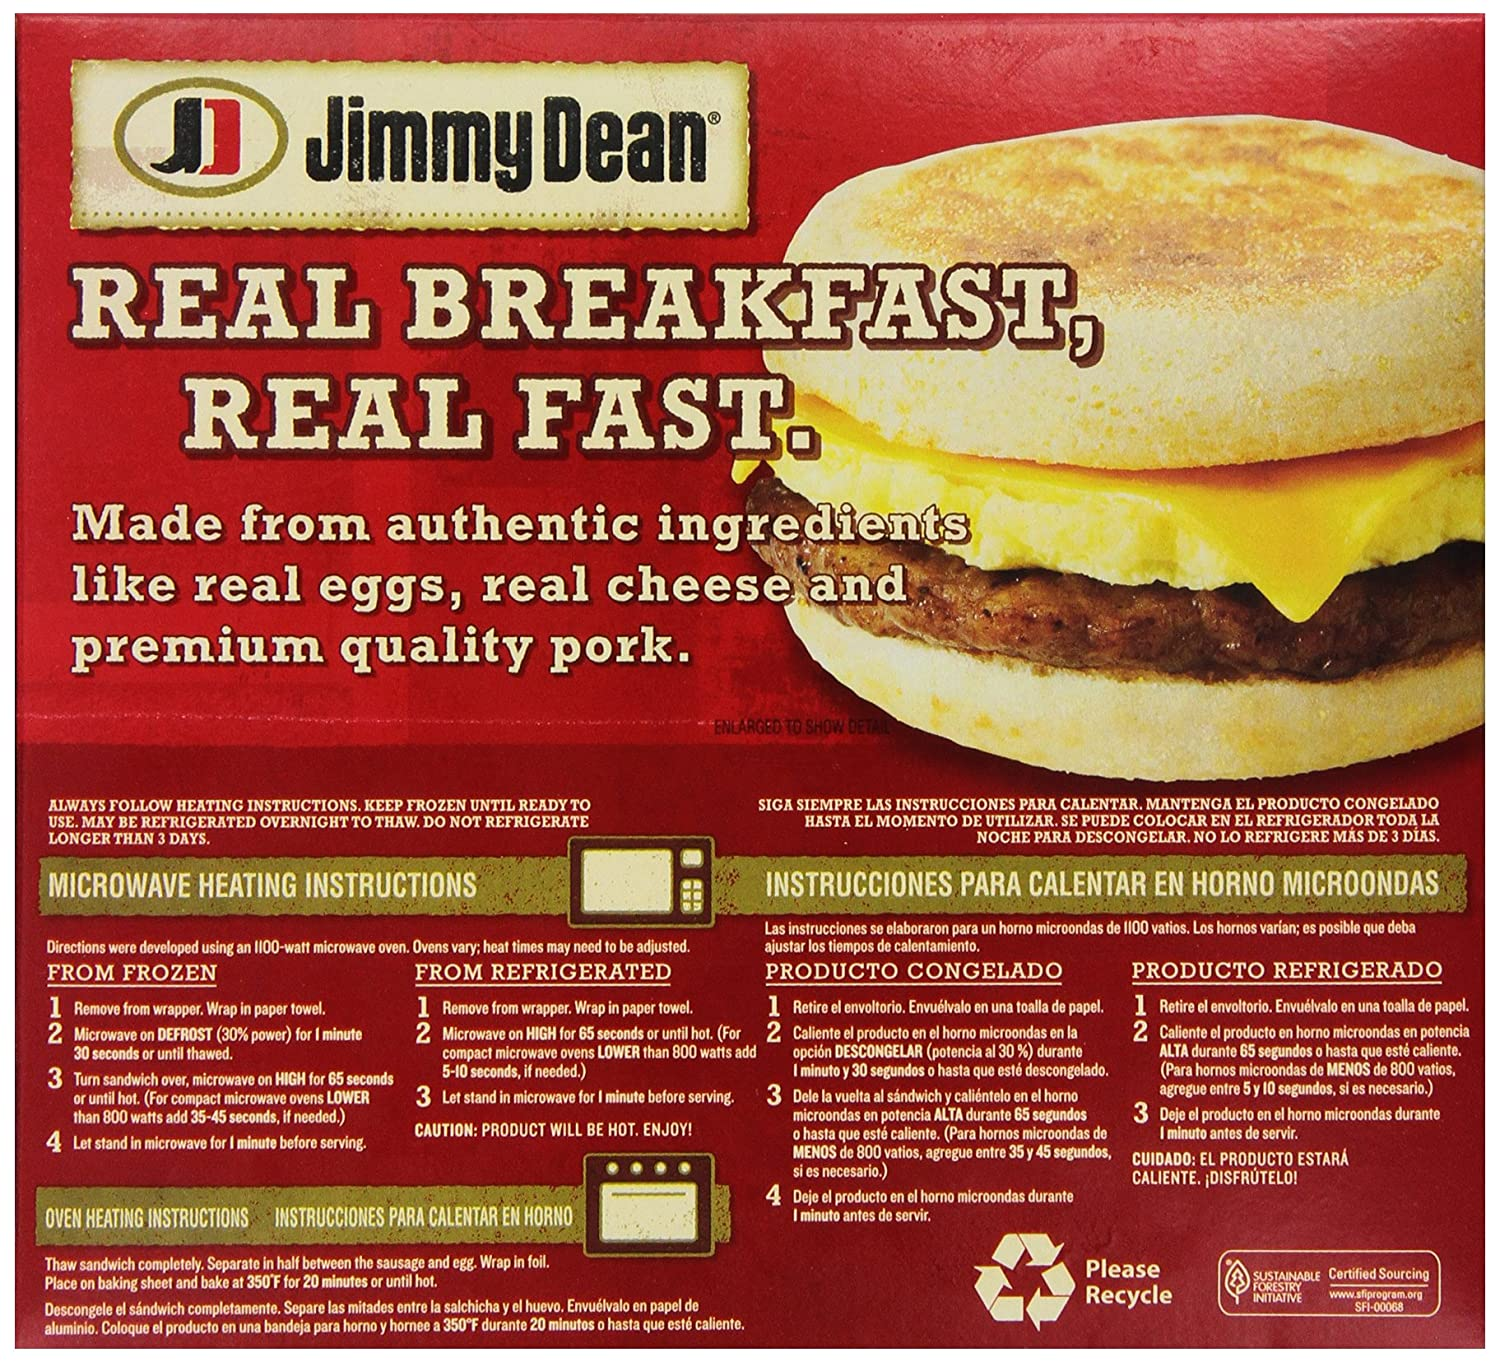 Jimmy Dean, Muffin Sandwiches, Sausage, Egg & Cheese, Meal Size, 4 Count (Frozen): Amazon.com: Grocery & Gourmet Food